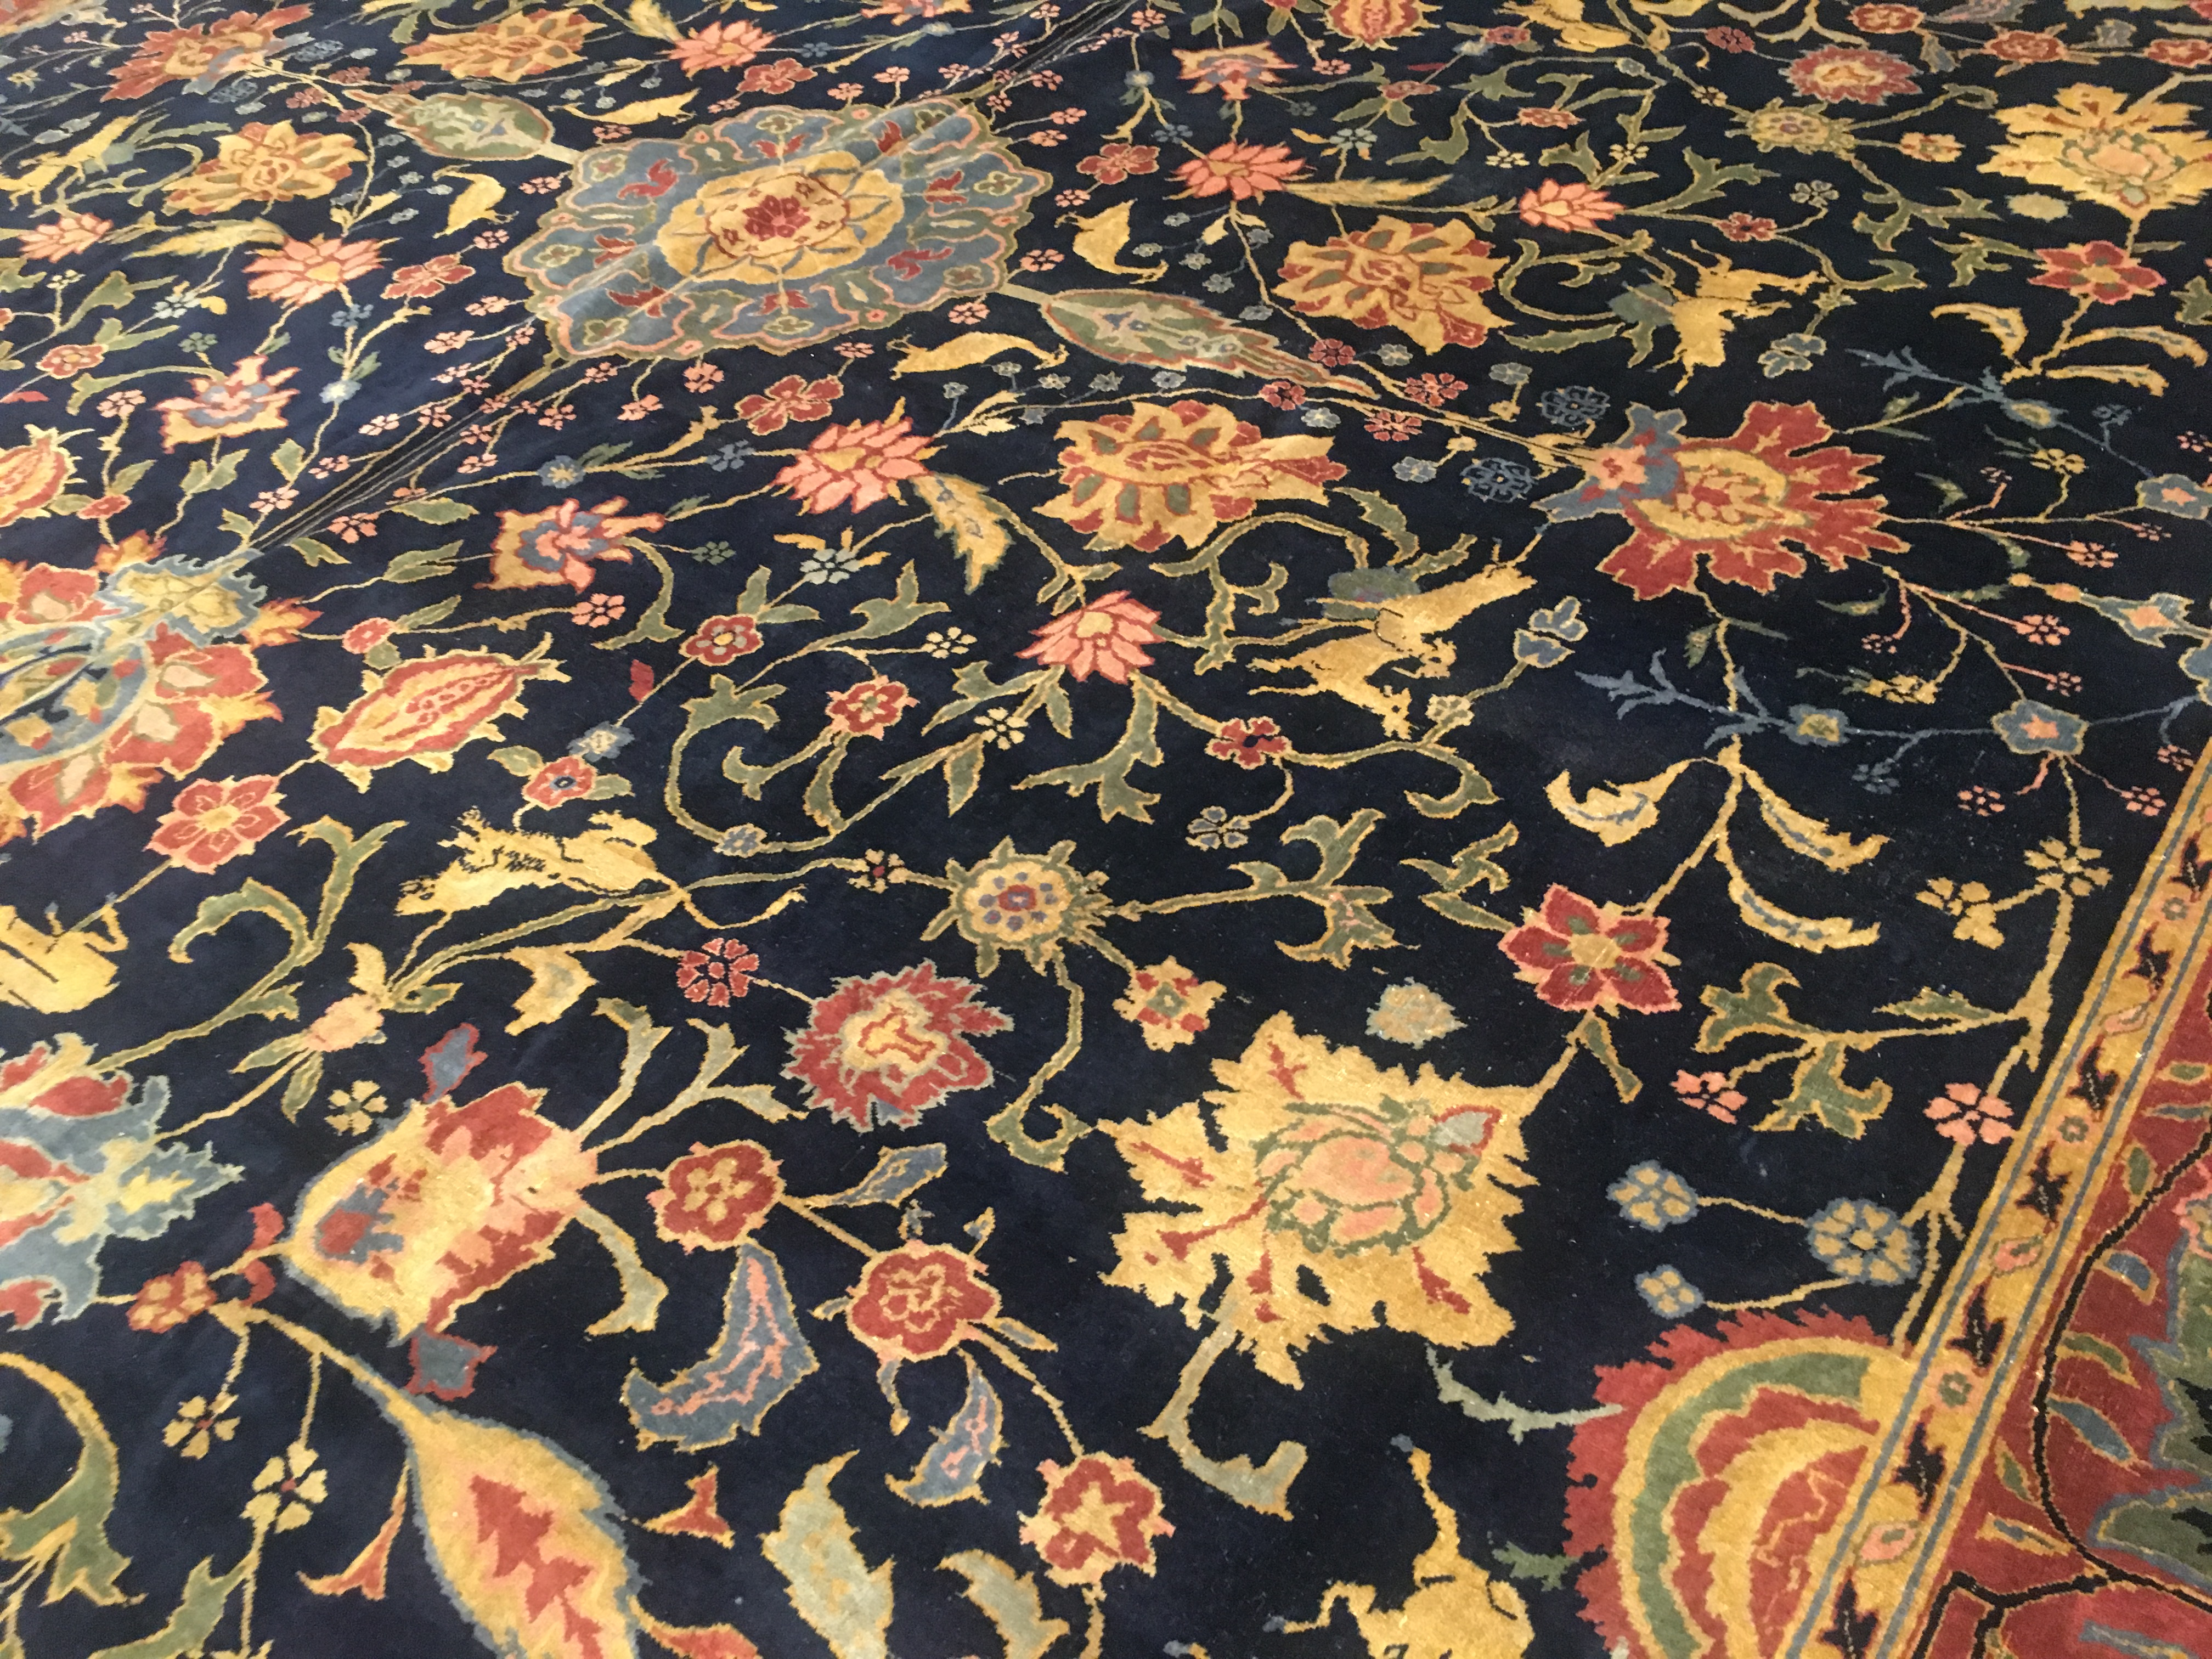 Antique indian Carpet - # 53876